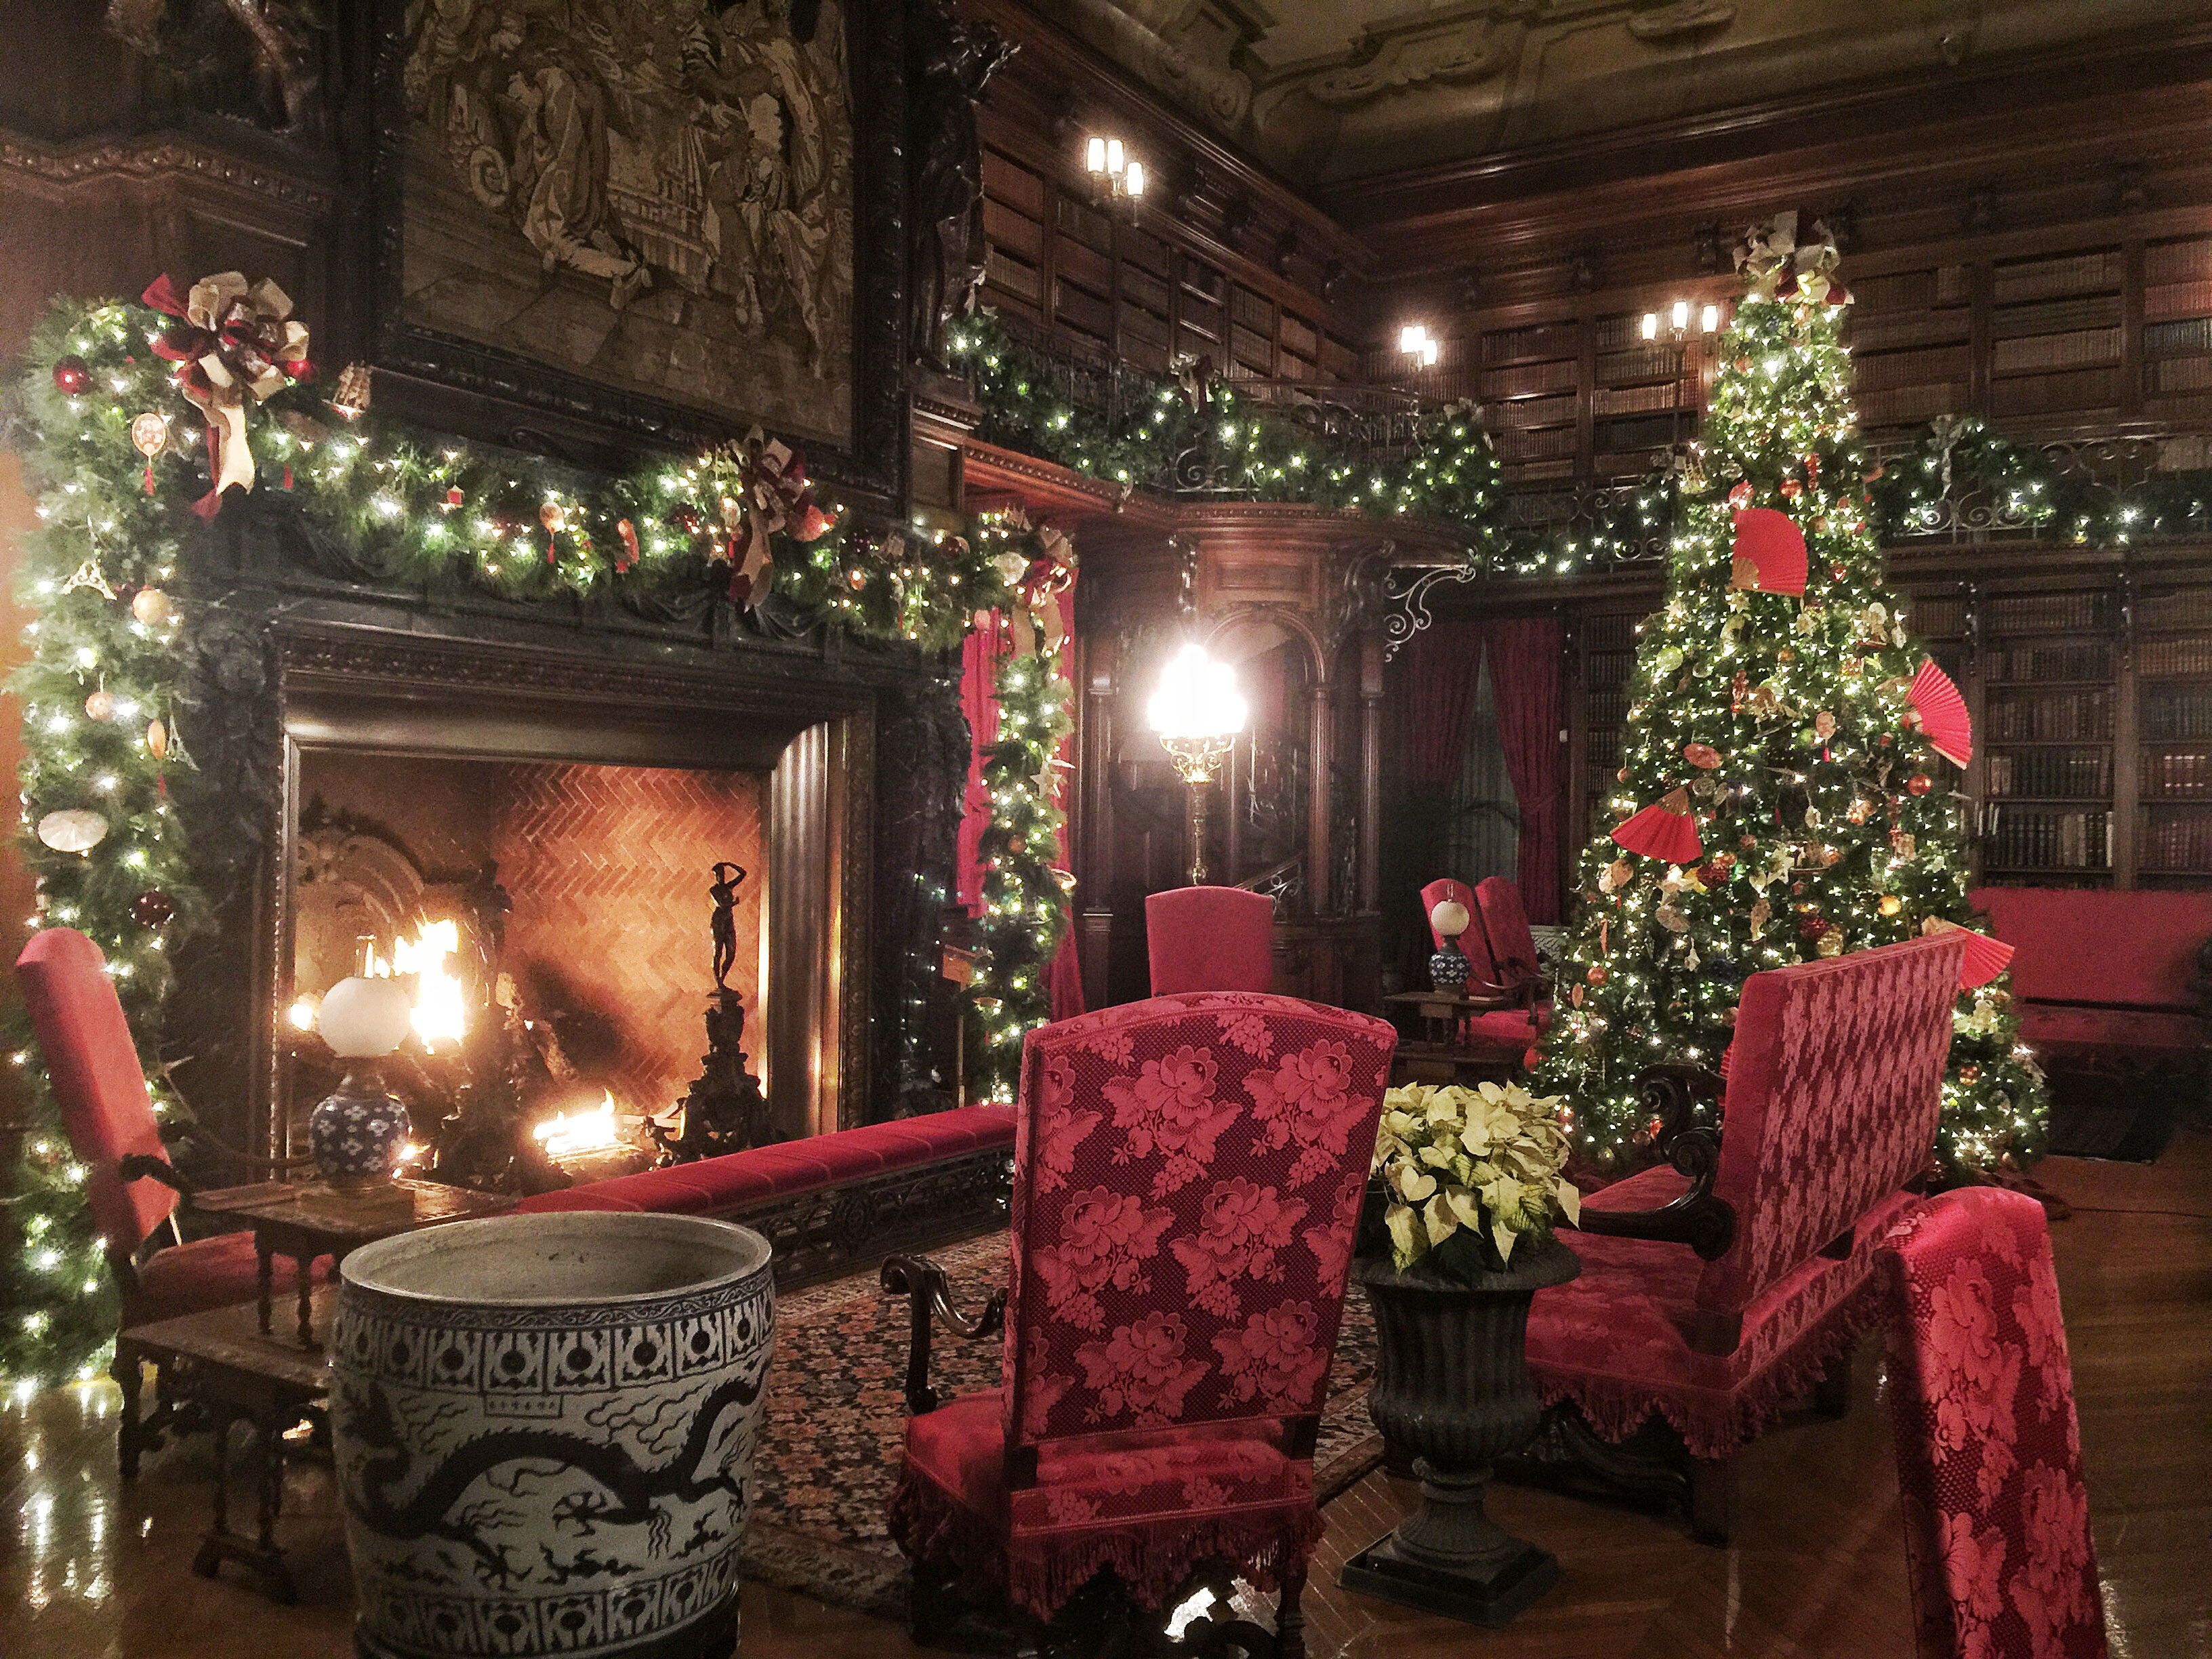 Christmas at the Biltmore Estate